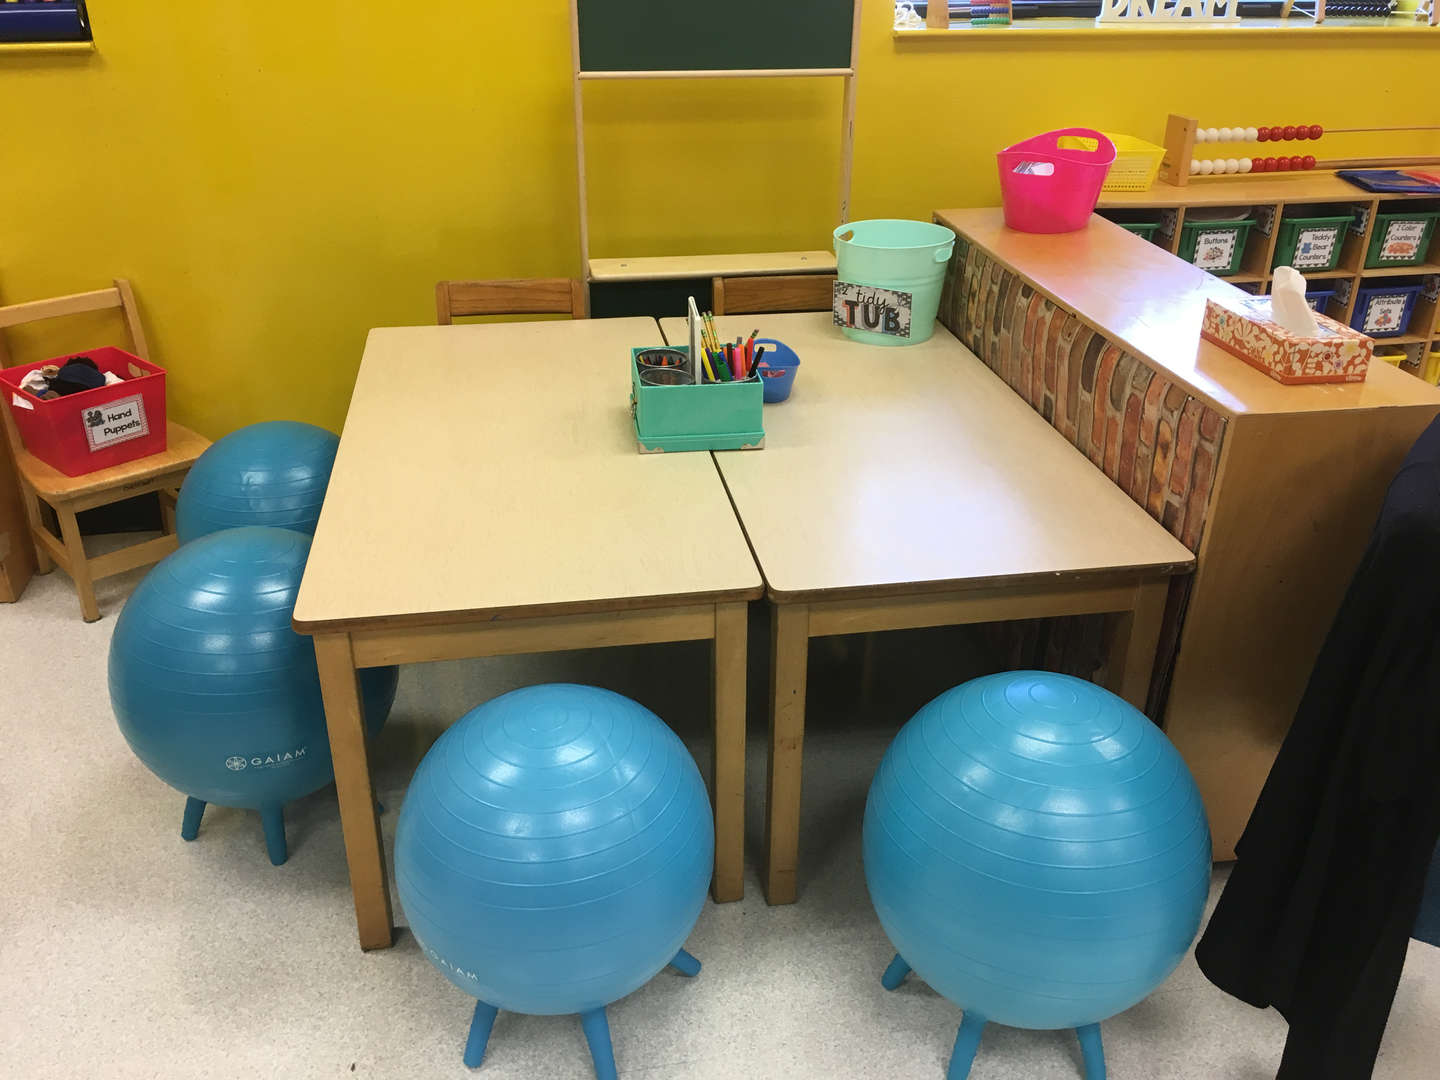 Flexible seating - balls